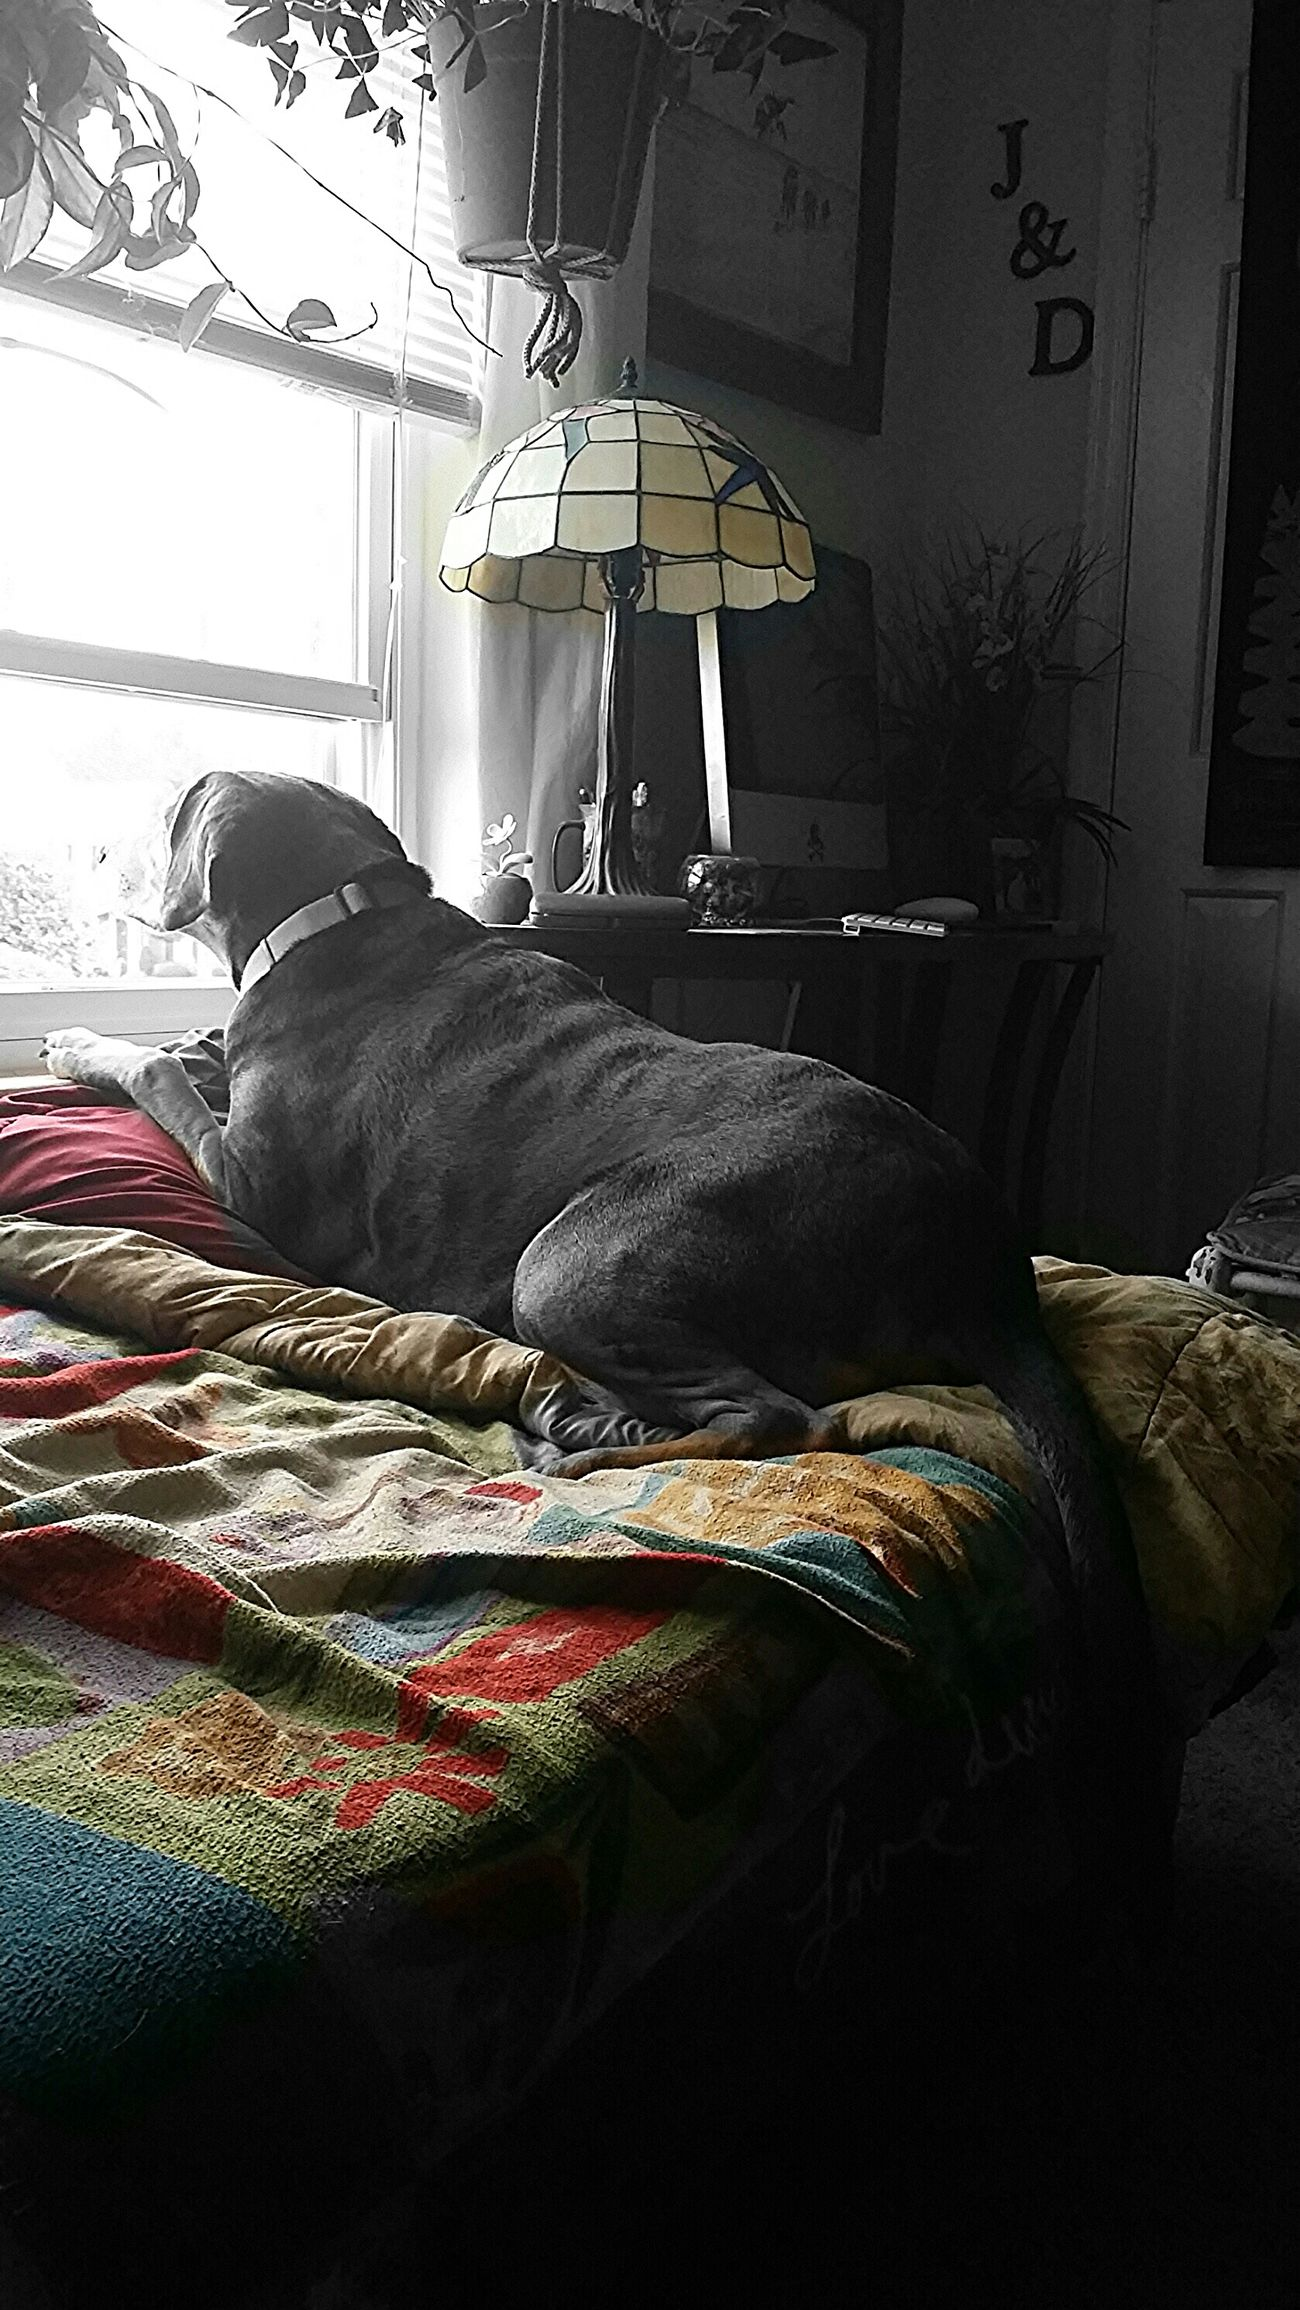 Dog Dogslife Chillin Colorsplash Relaxing Enjoying Life Looking To The Other Side I Love My Dog Hound Furkids